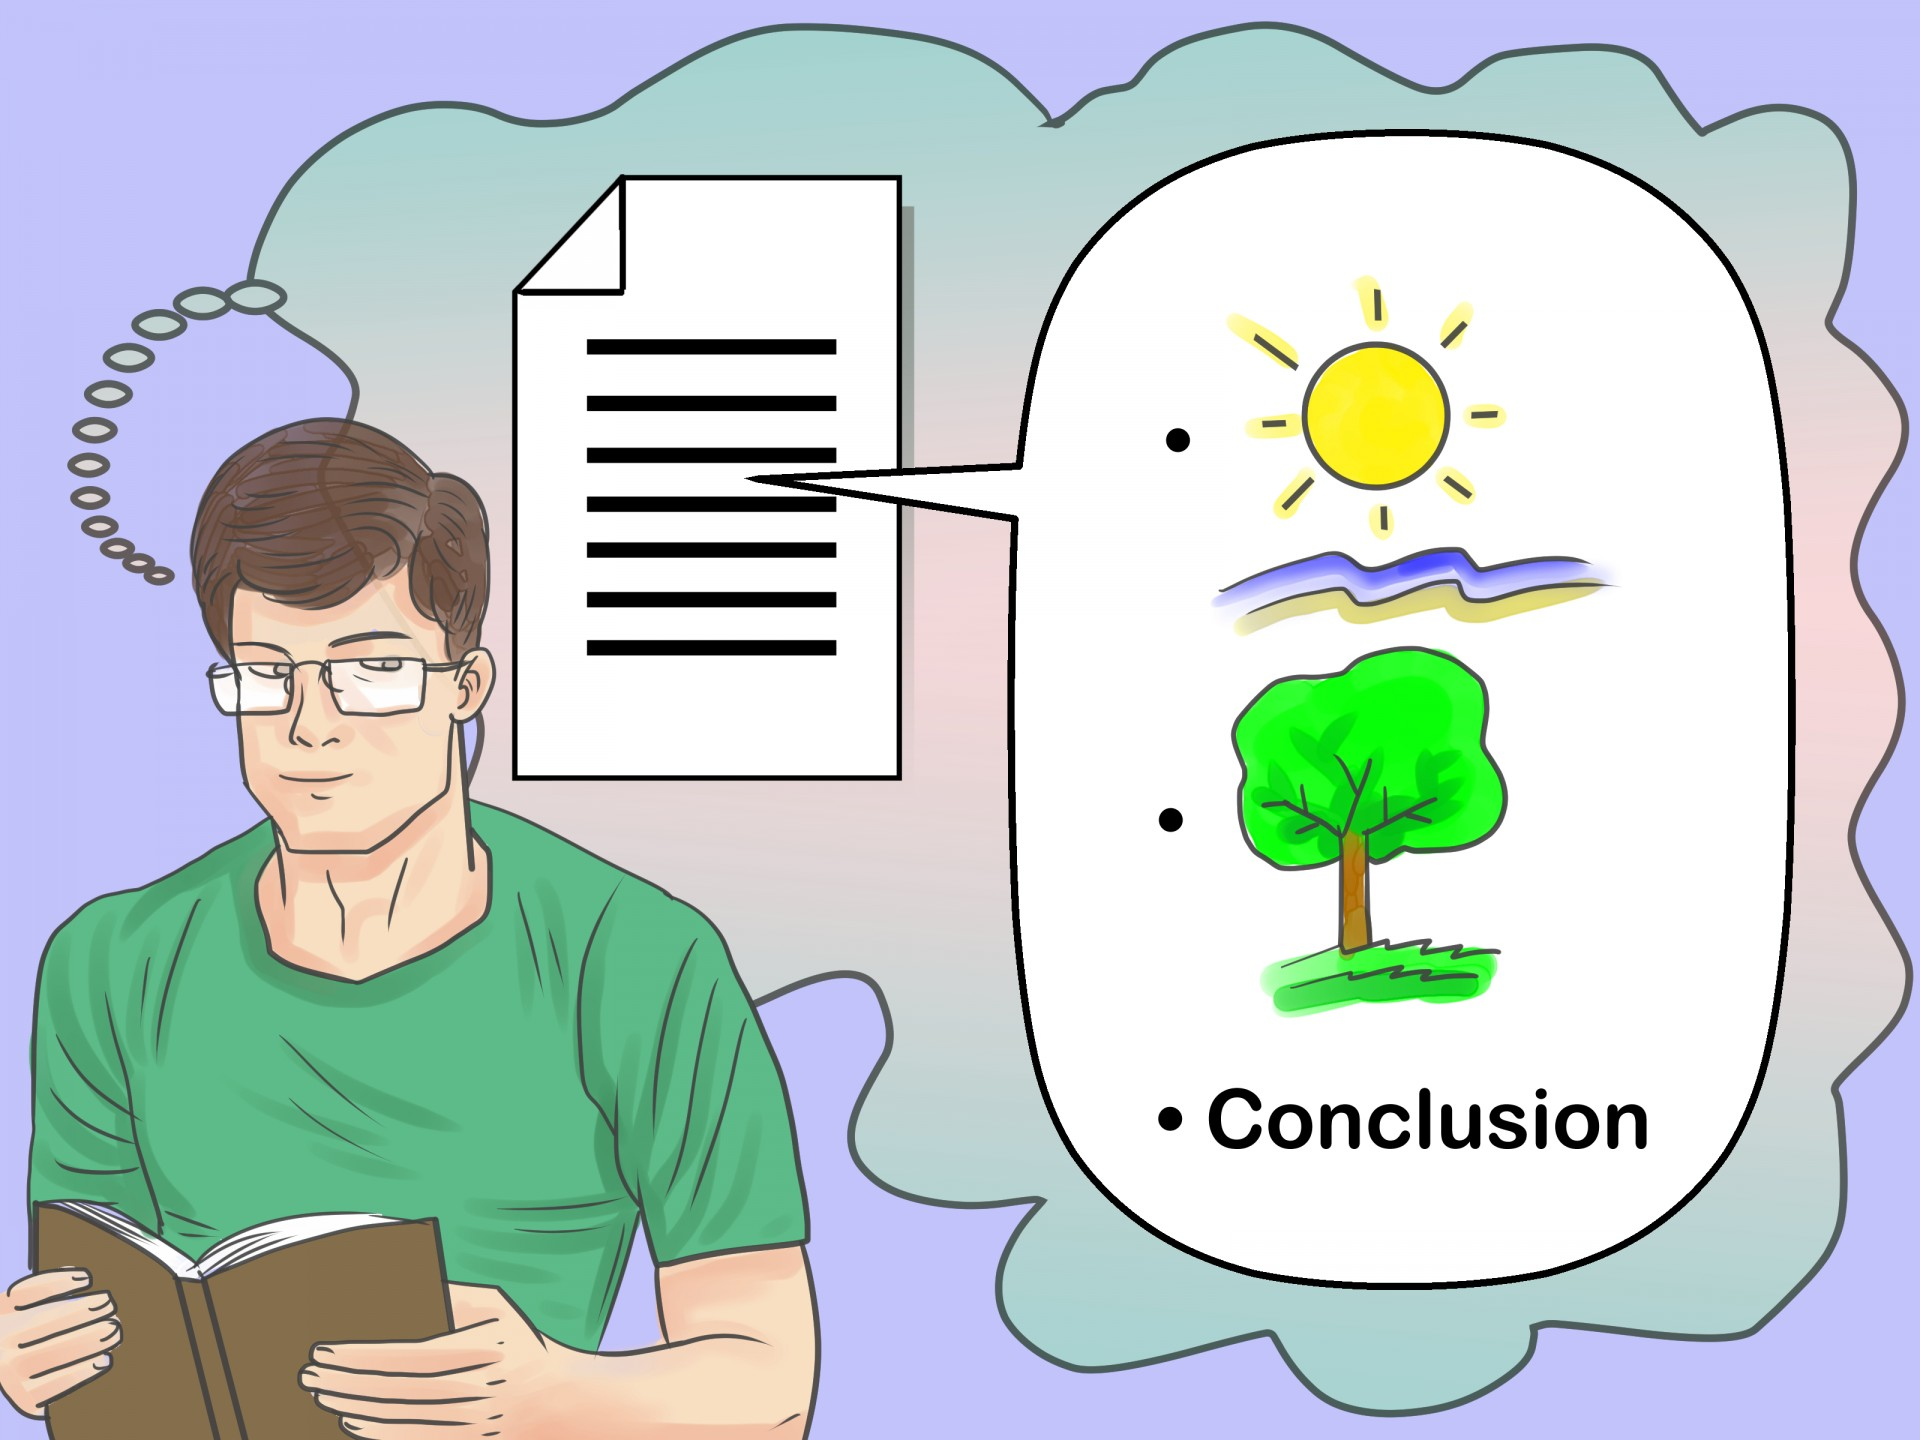 015 Compare And Contrast Essay Example Write Step Version Formidable A Apush Thesis Topics 2017 1920